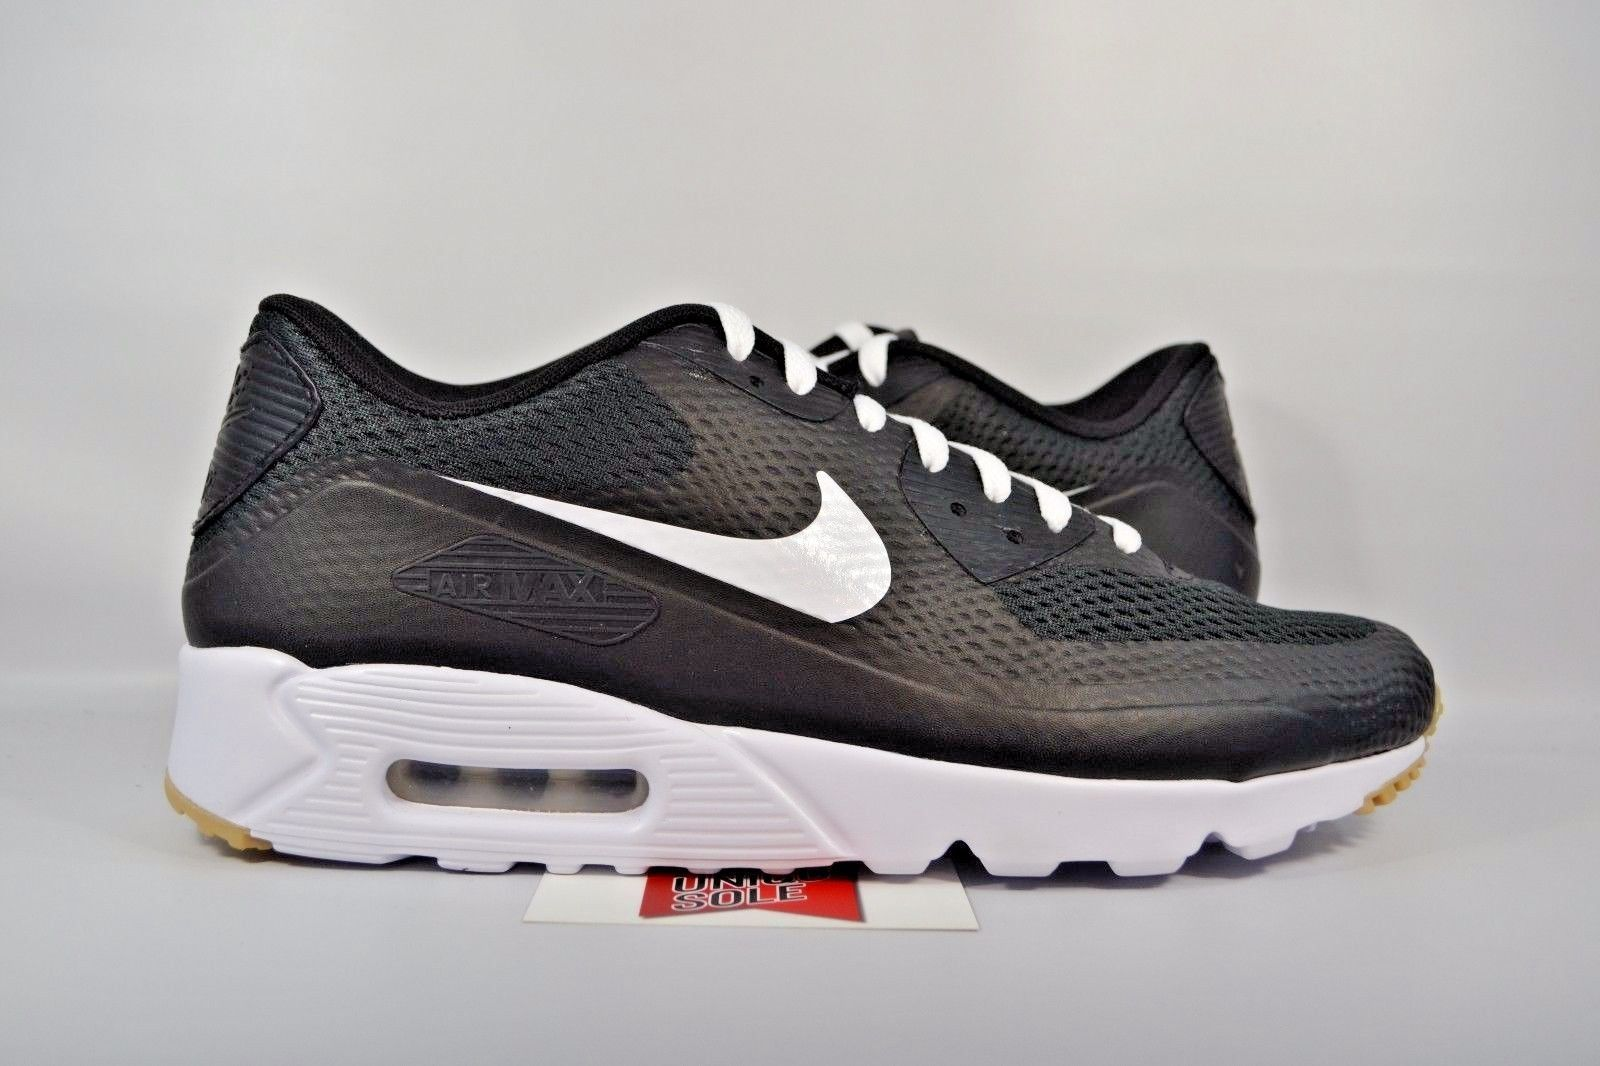 775b64a1ac9 NEW Nike Air Max 90 Ultra Essential BLACK WHITE GUM BOTTOM 819474-010 sz  10.5